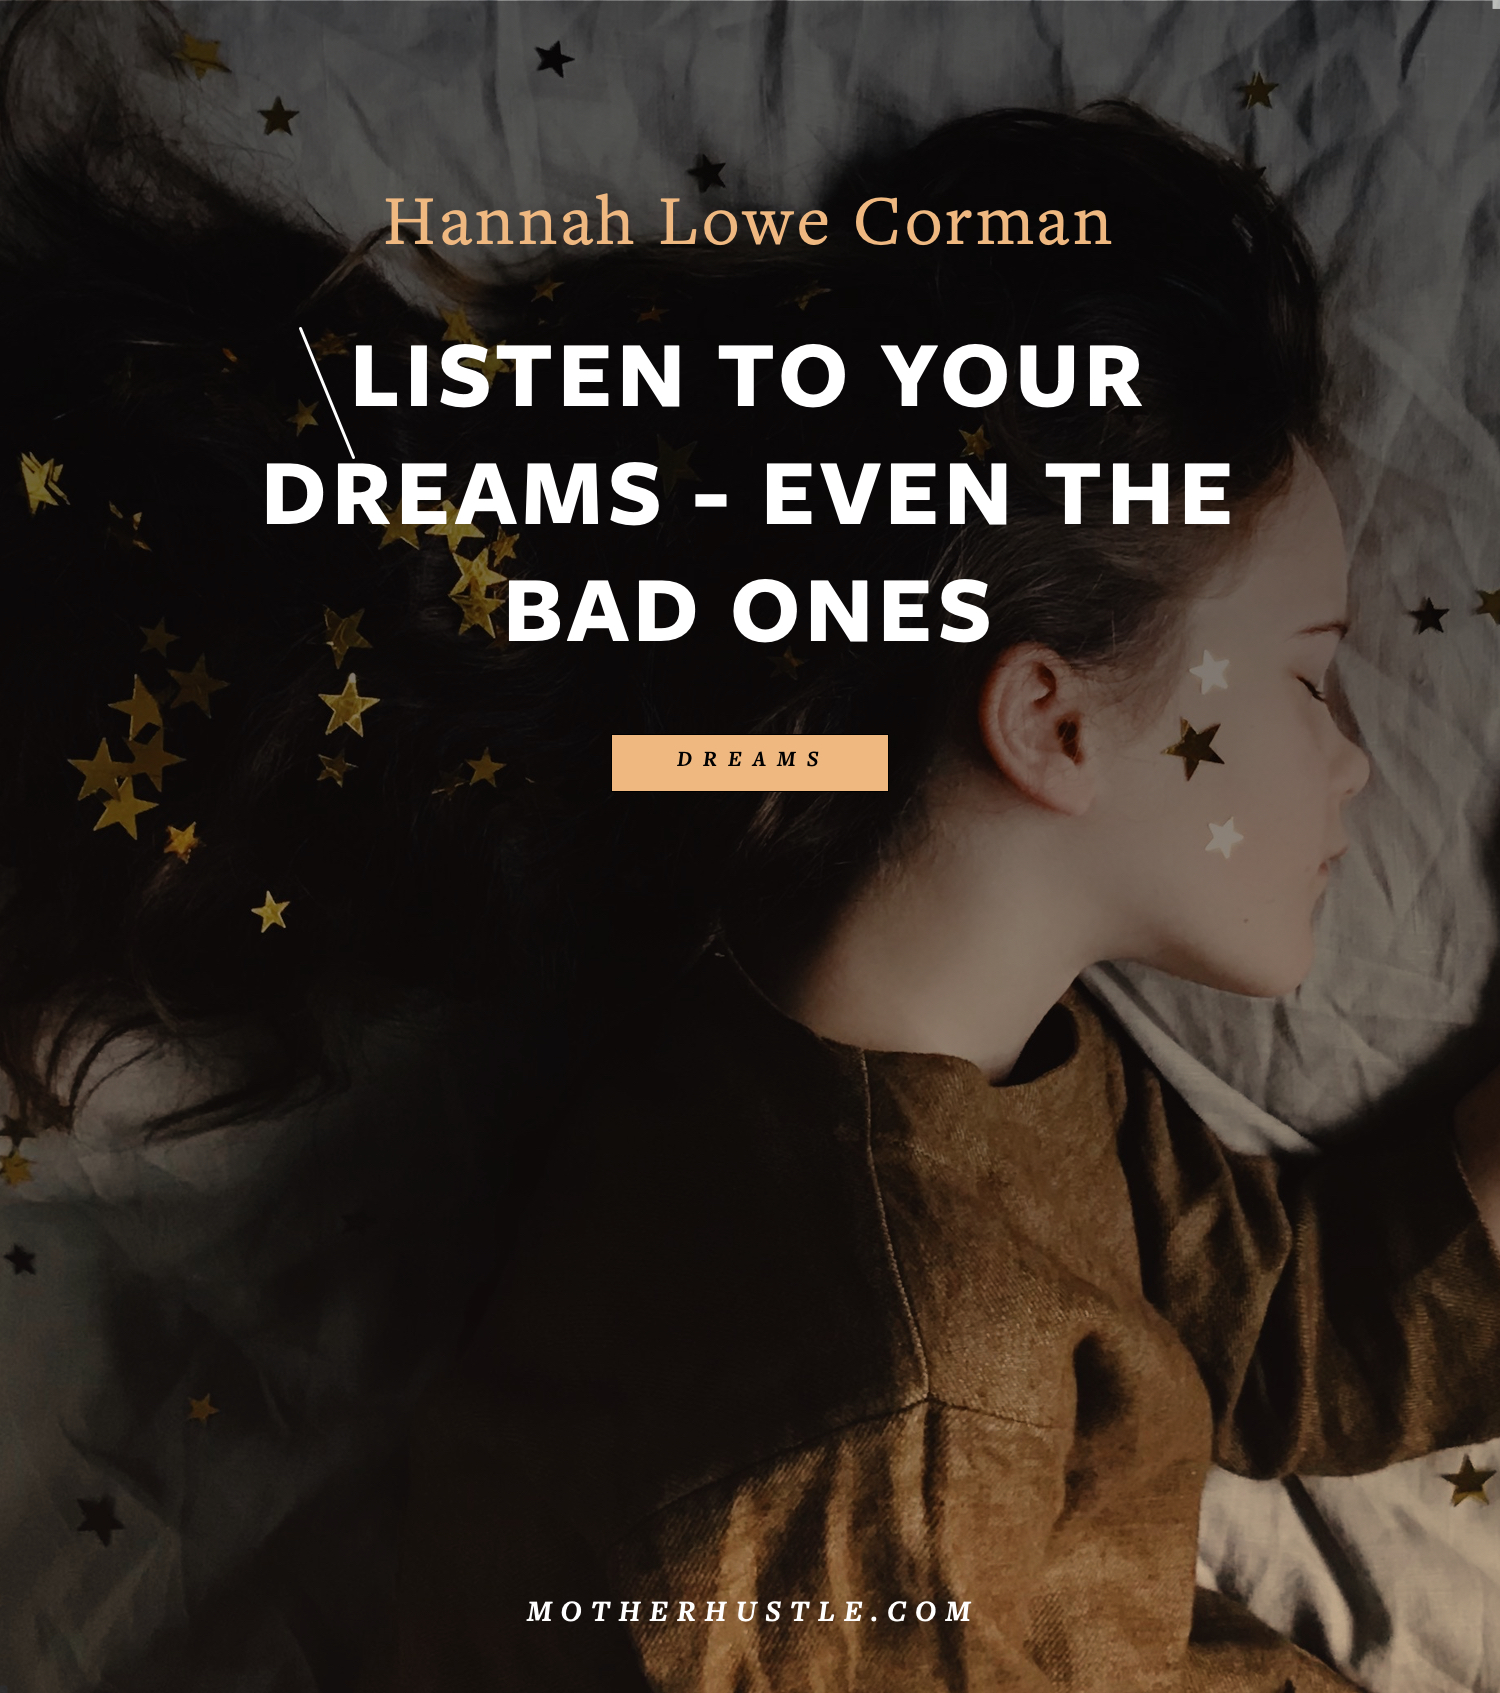 Listen to Your Dreams - Even The Bad Ones - BY Hannah Lowe Corman for MotherHustle